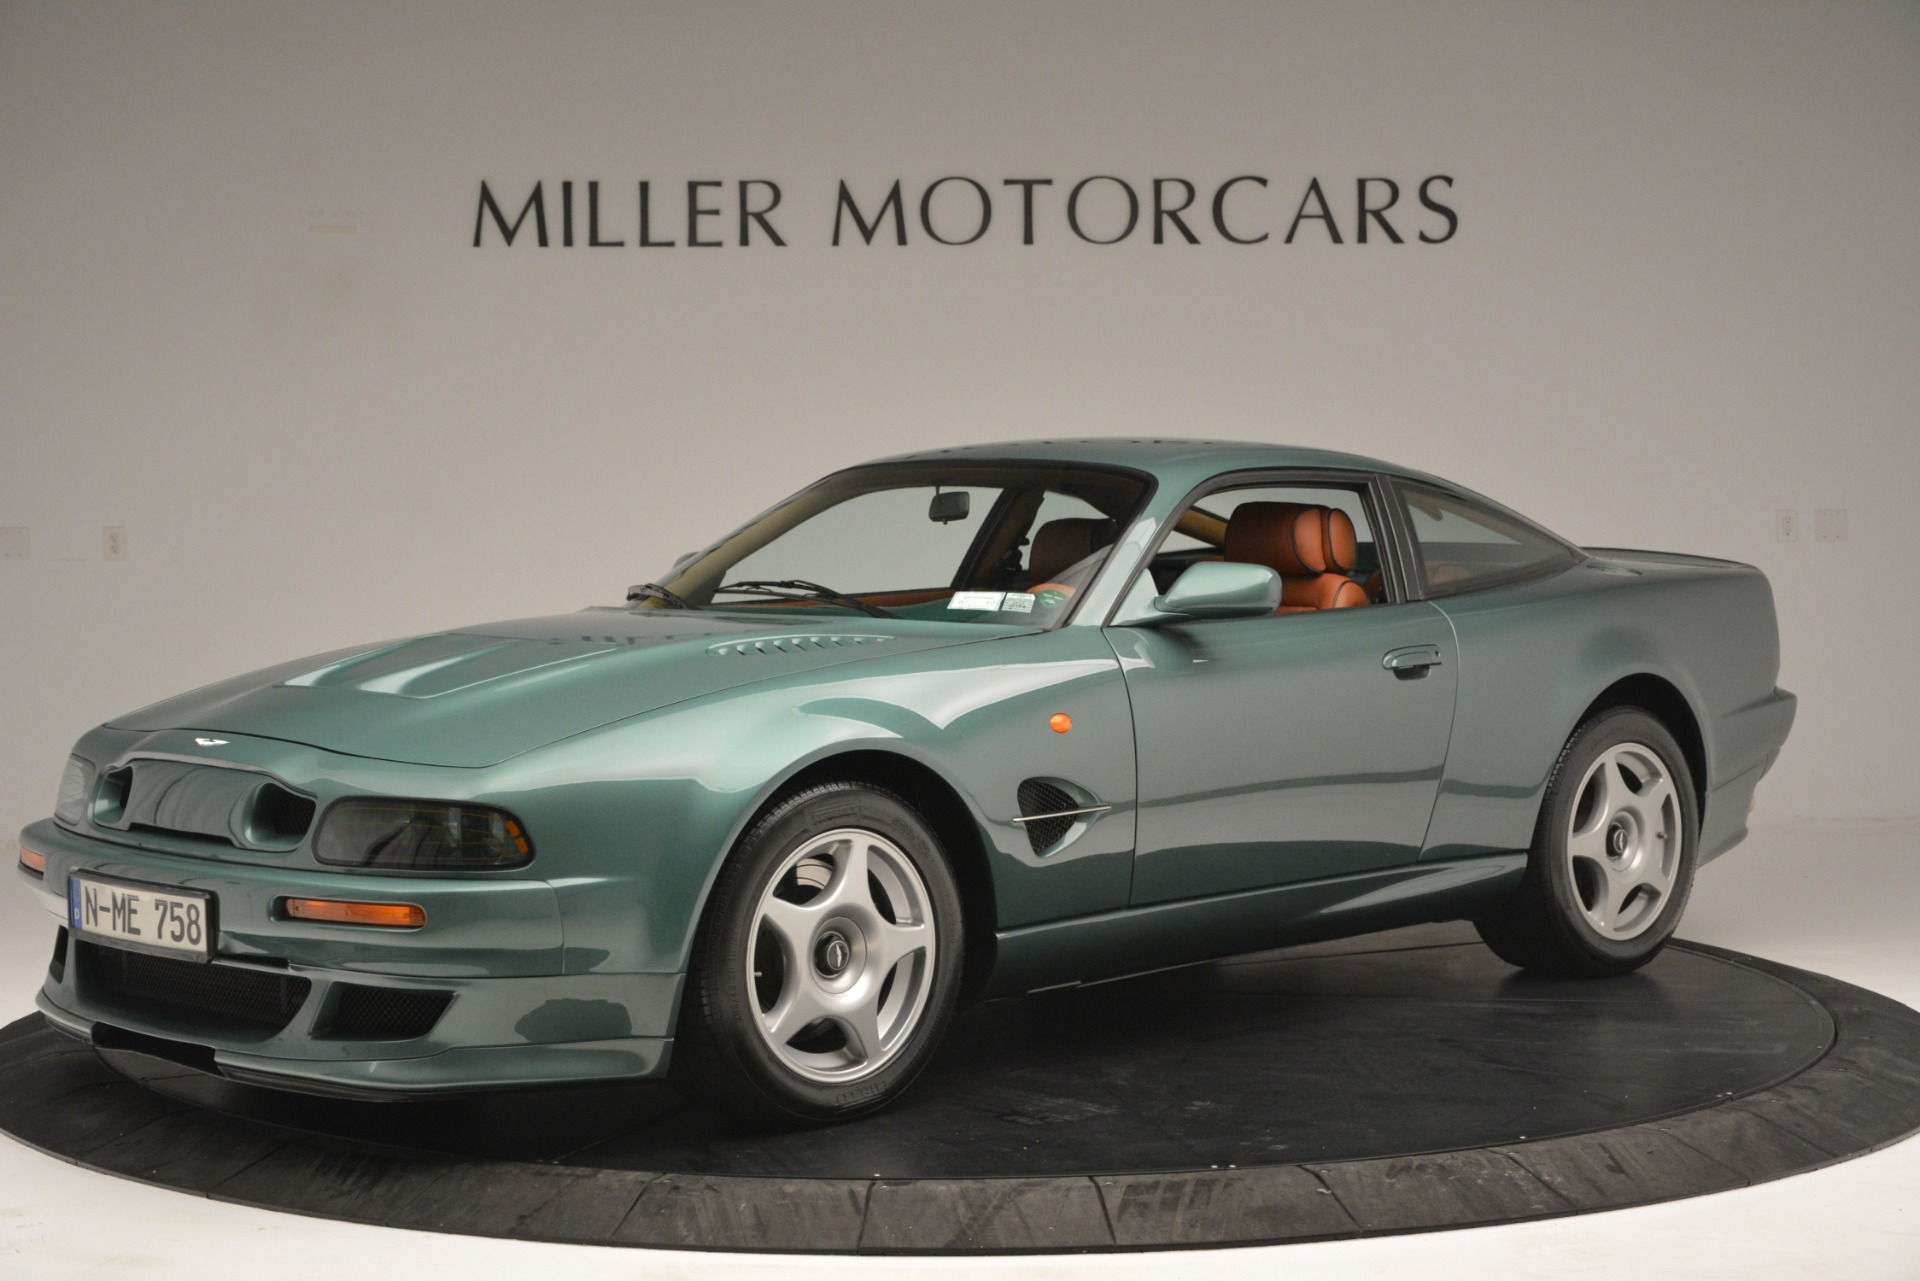 Used 1999 Aston Martin V8 Vantage Le Mans V600 Coupe For Sale In Greenwich, CT 2789_main